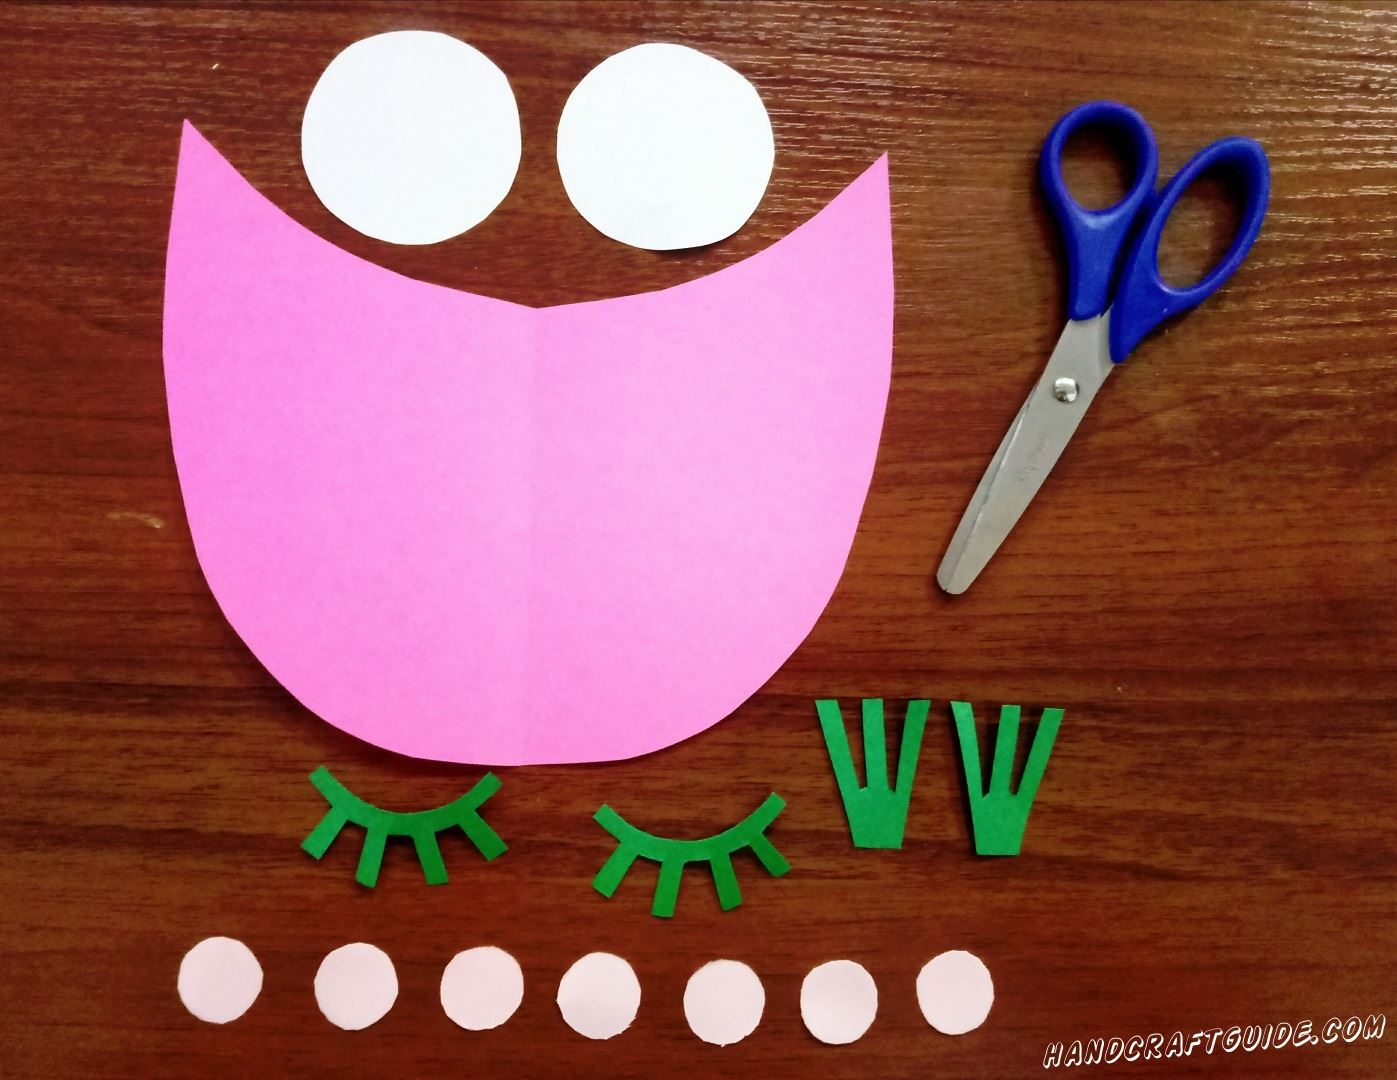 Take pink paper and scissors. Cut out a detail which looks like a boat or a wide smile :) Next take white paper and cut out 2 middle size circles and 7 small circles. Now choose green paper. Cut out eyeslashes and 2 details like crowns. Don't forget to cut a small orange rectangle. You can see how we did it in the photo :) Well done, let's continue...